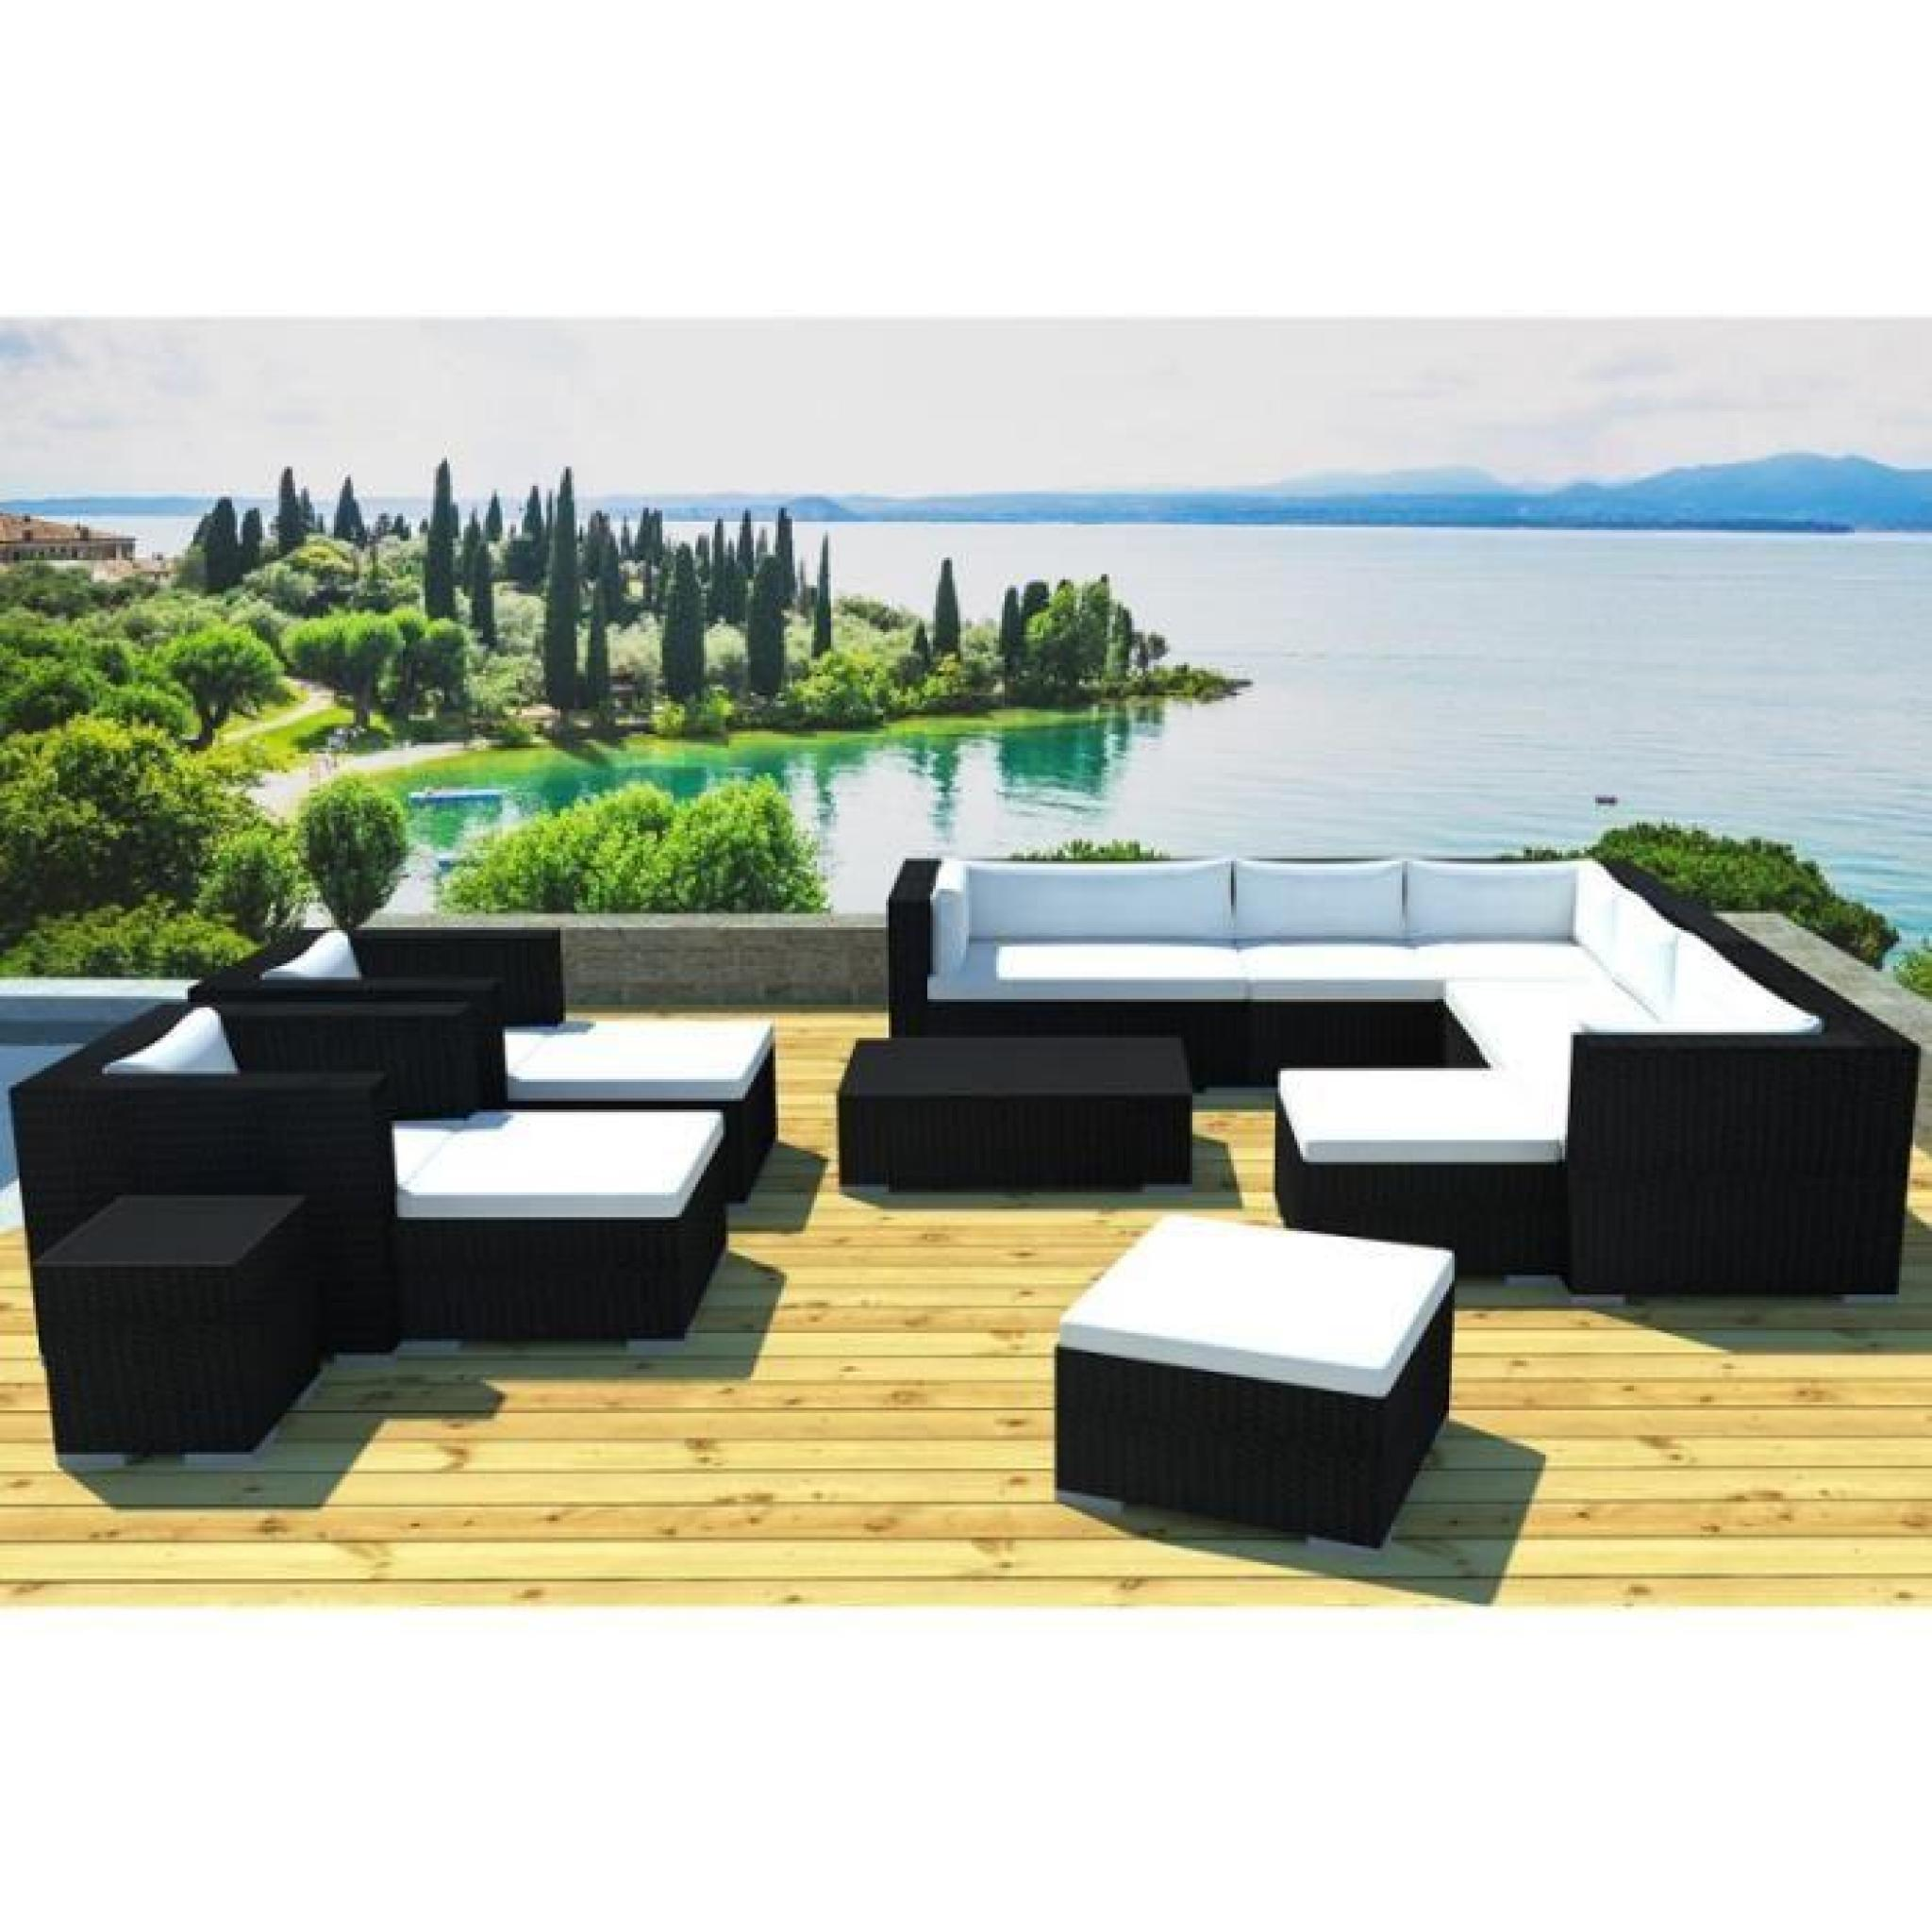 paris prix salon de jardin en r sine lisbonne 12. Black Bedroom Furniture Sets. Home Design Ideas